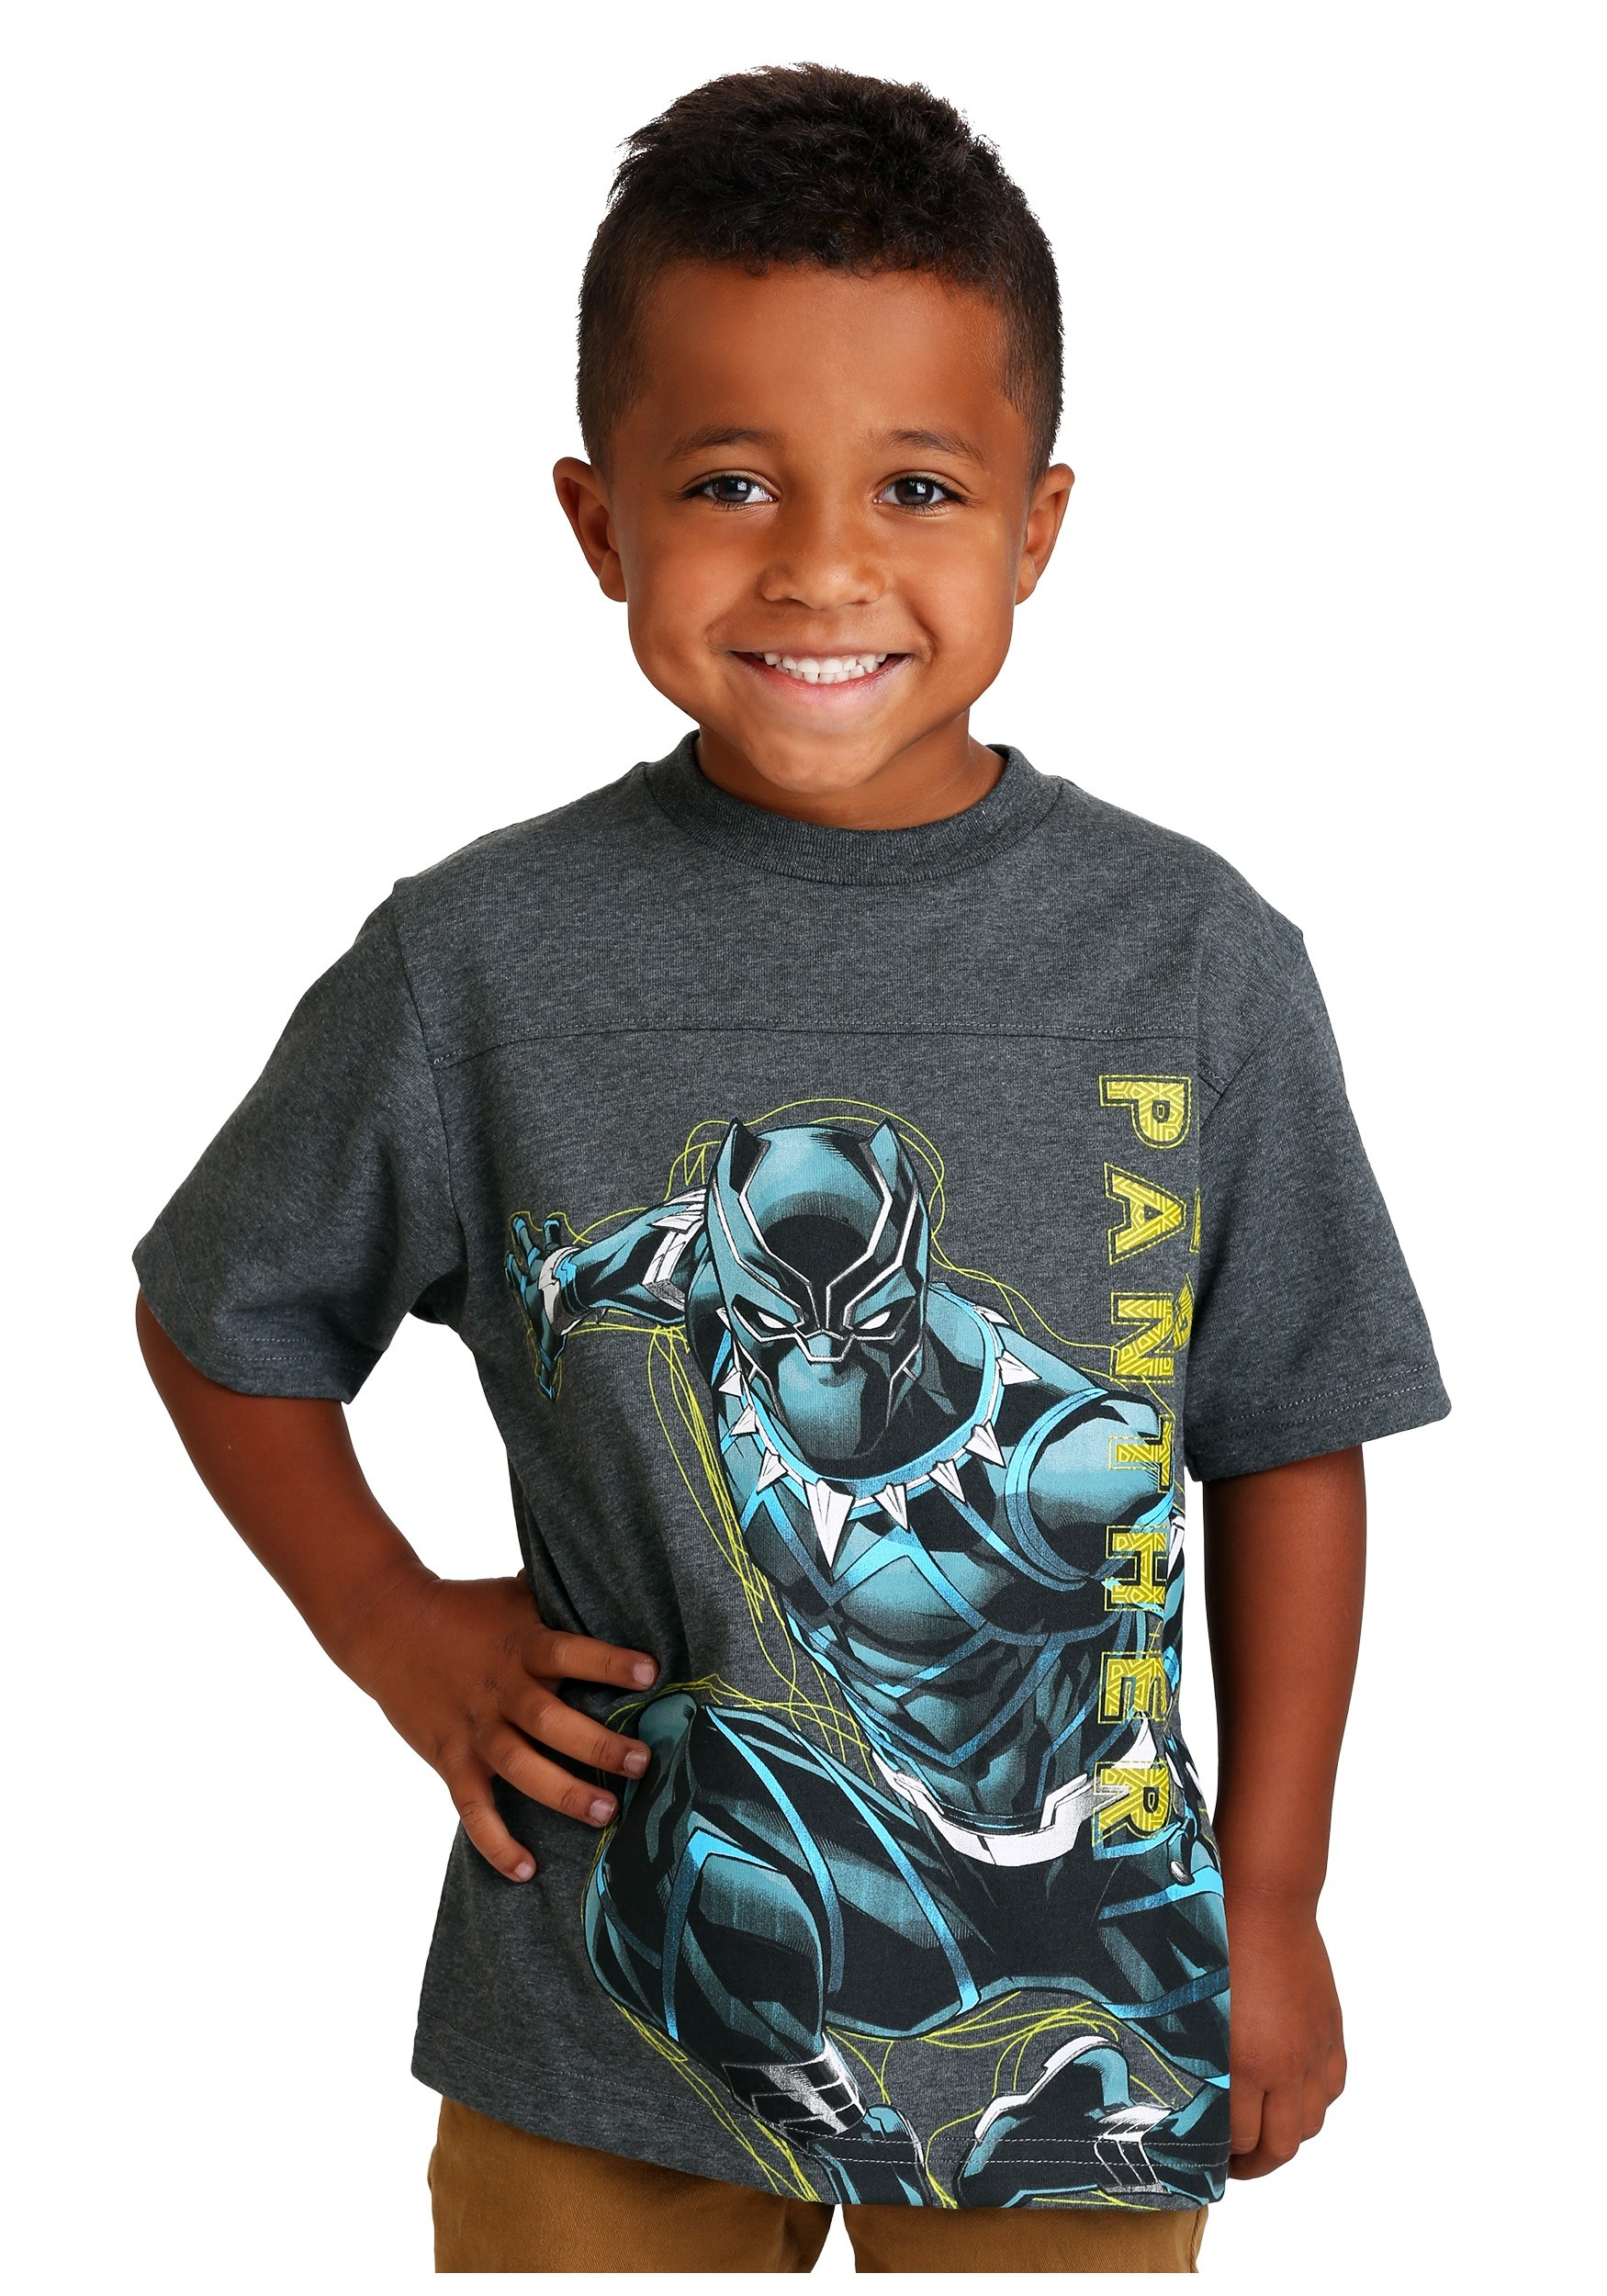 7be6dd77 Marvel Black Panther Glow In The Dark Boys Graphic T-Shirt   8